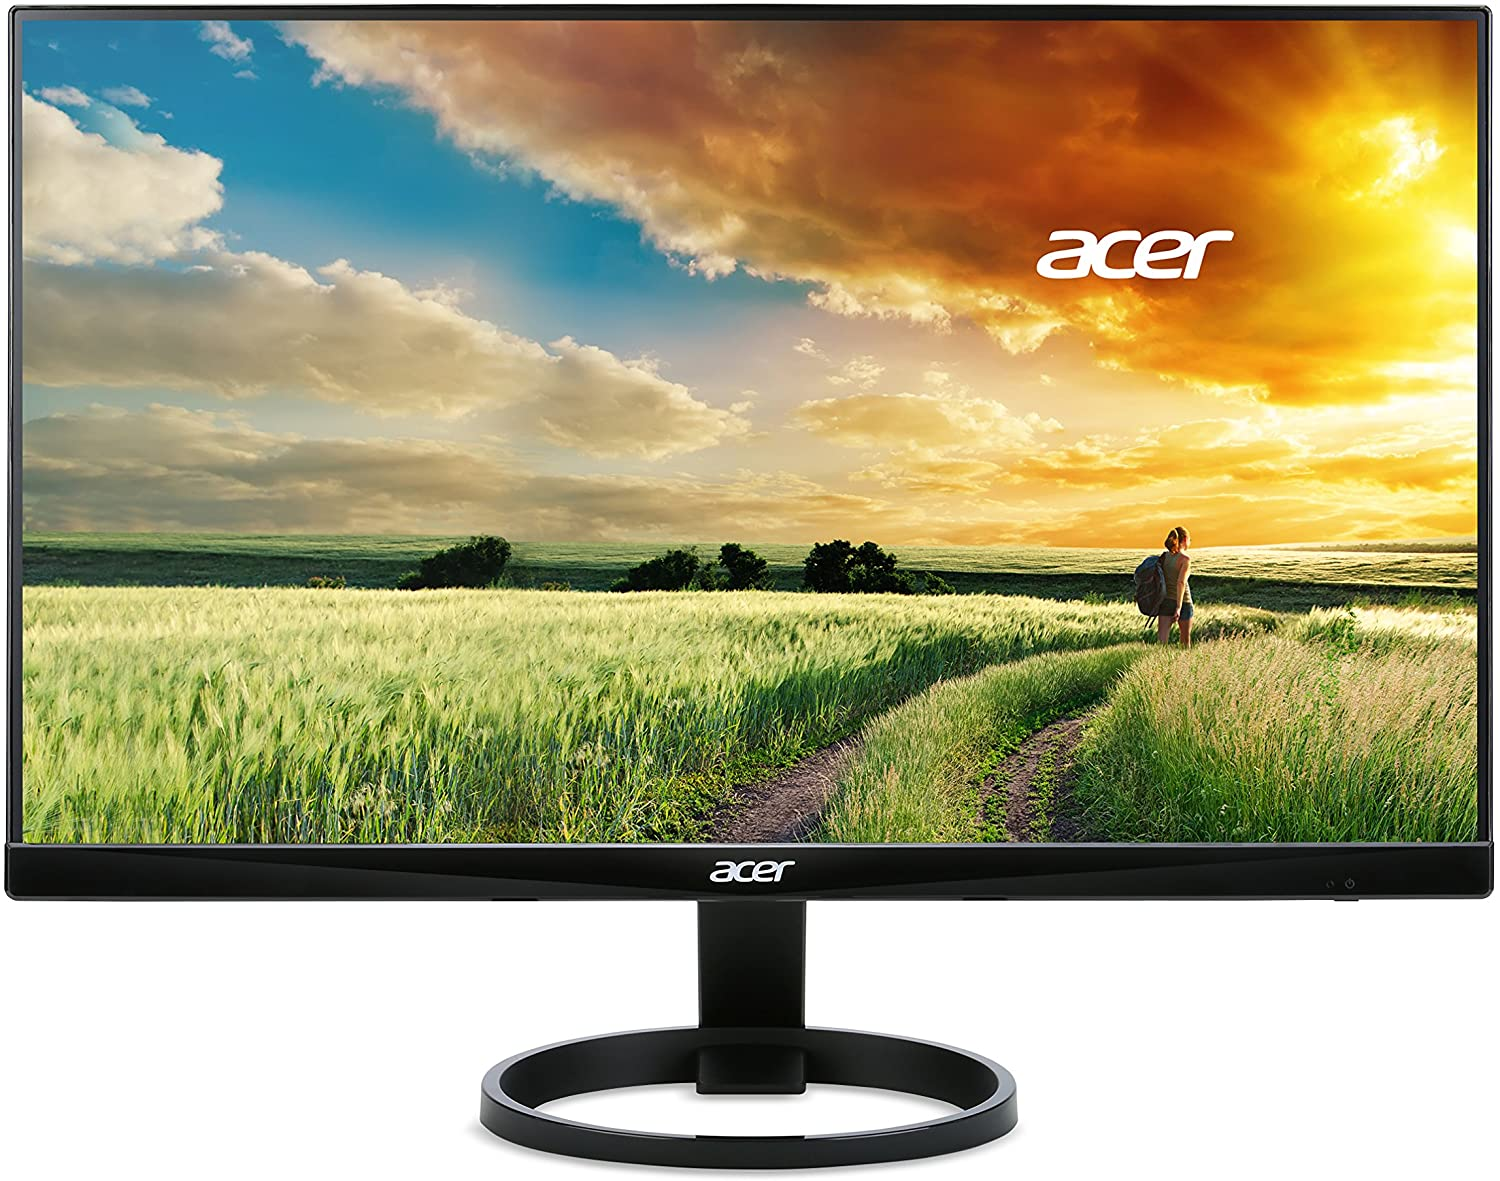 Acer R240HY monitor